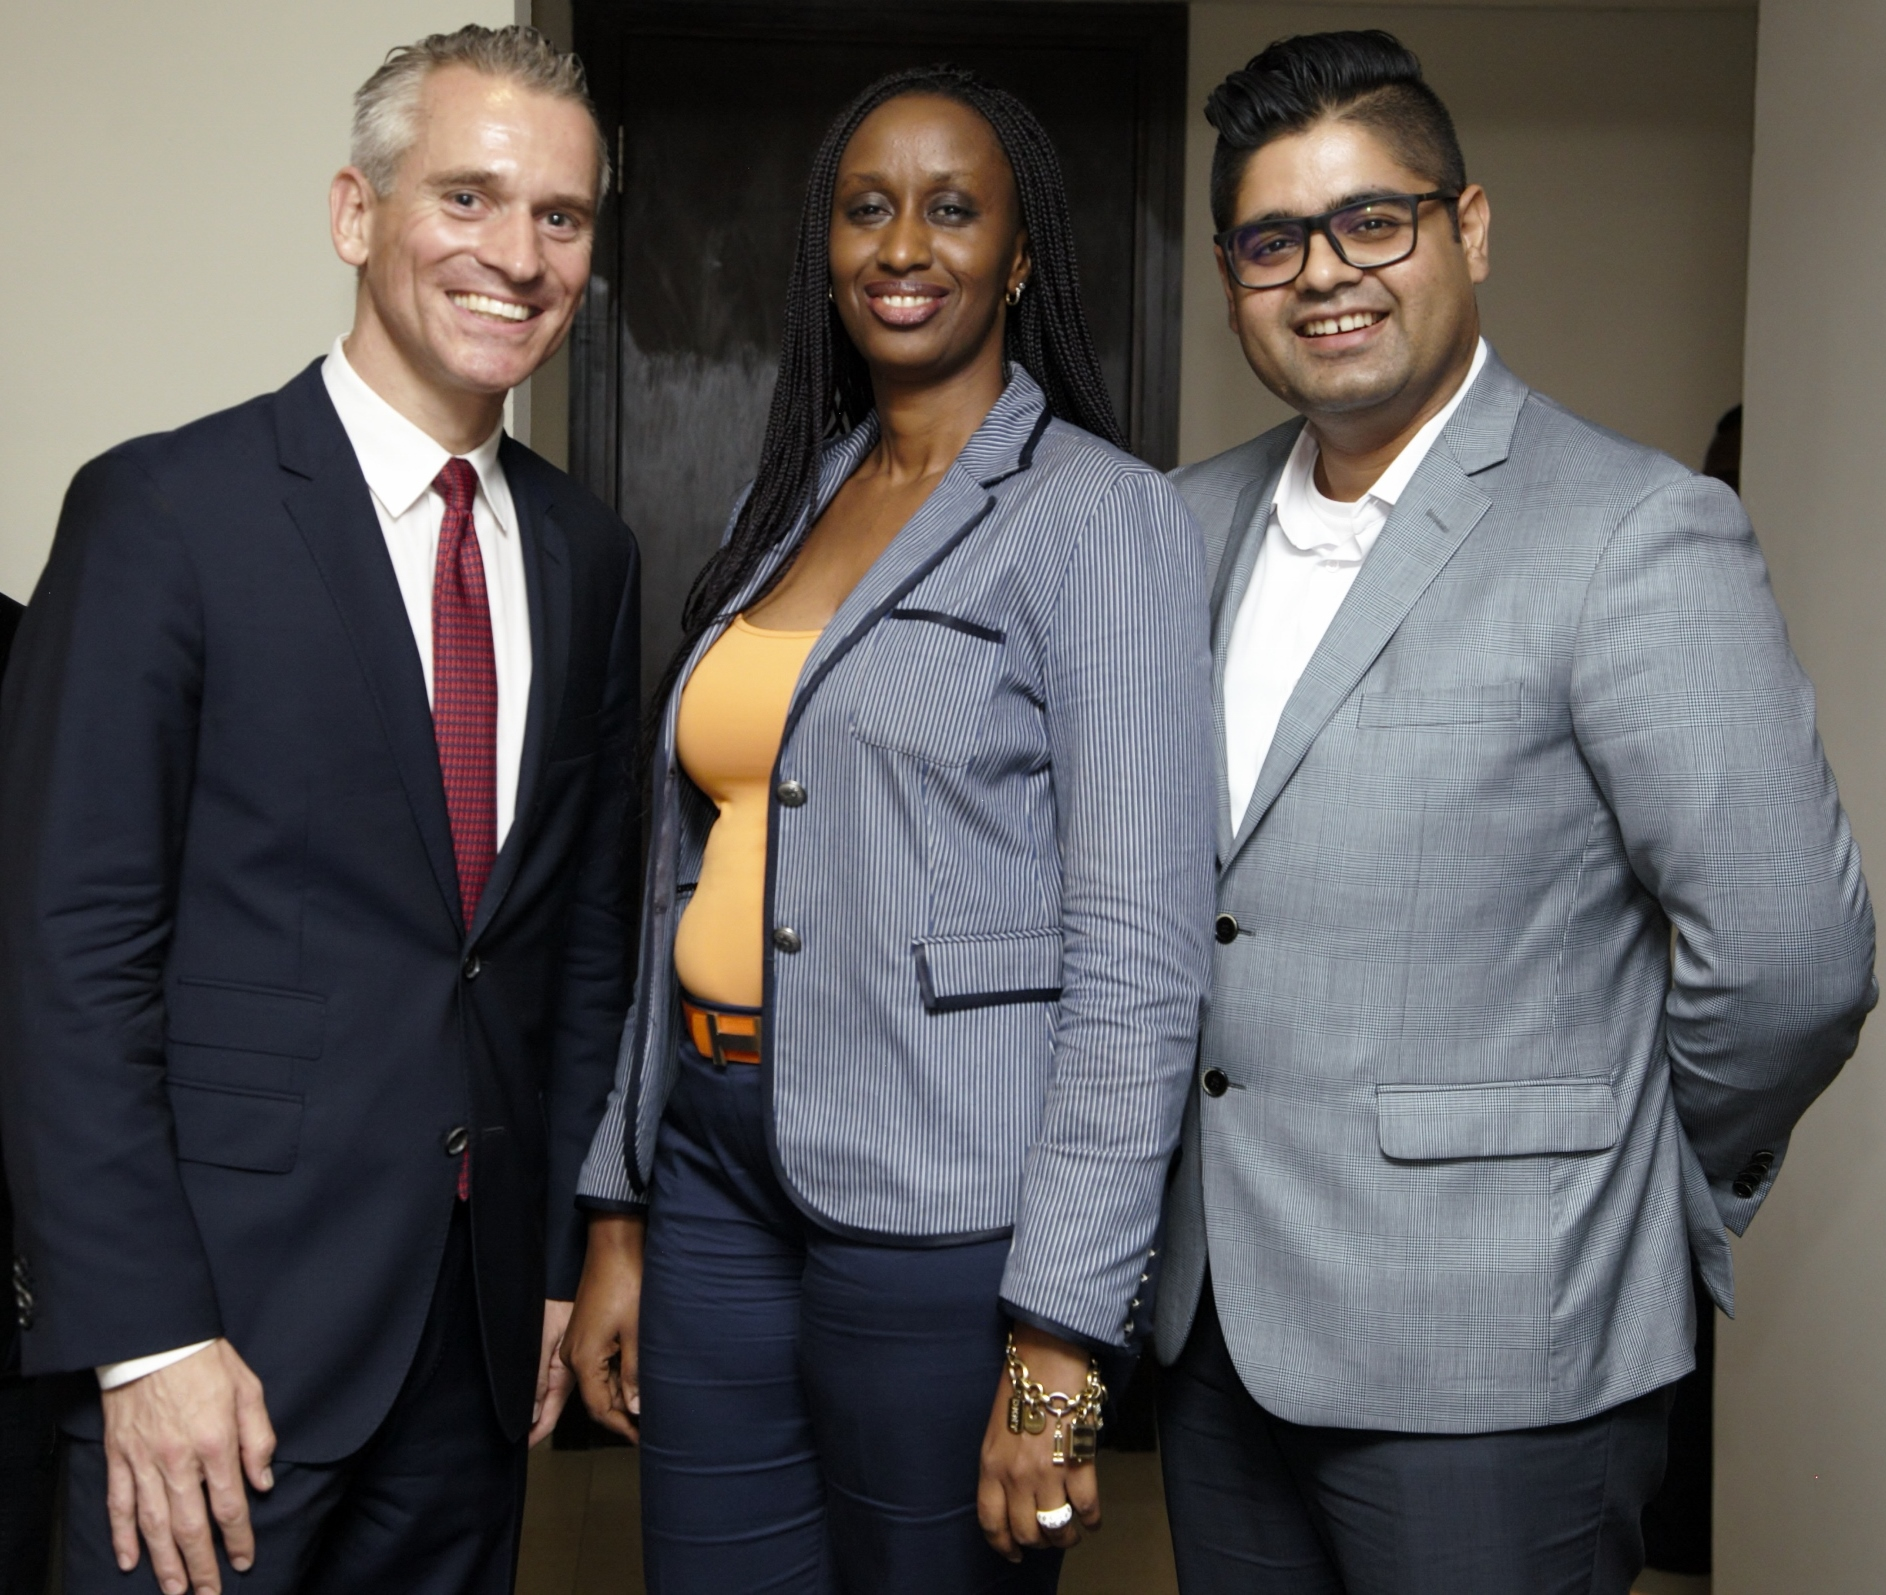 L-R: Daniel Weihrauch, CEO Lions&Gazelles; Fifi Rurangwa, Head of Africa Expansion, Wakanow and AbdulRaouf AbdulRazak, Deputy Head of Sales, Dubai Parks and Resorts during the unveiling of Dubai Parks and Resorts in Lagos.